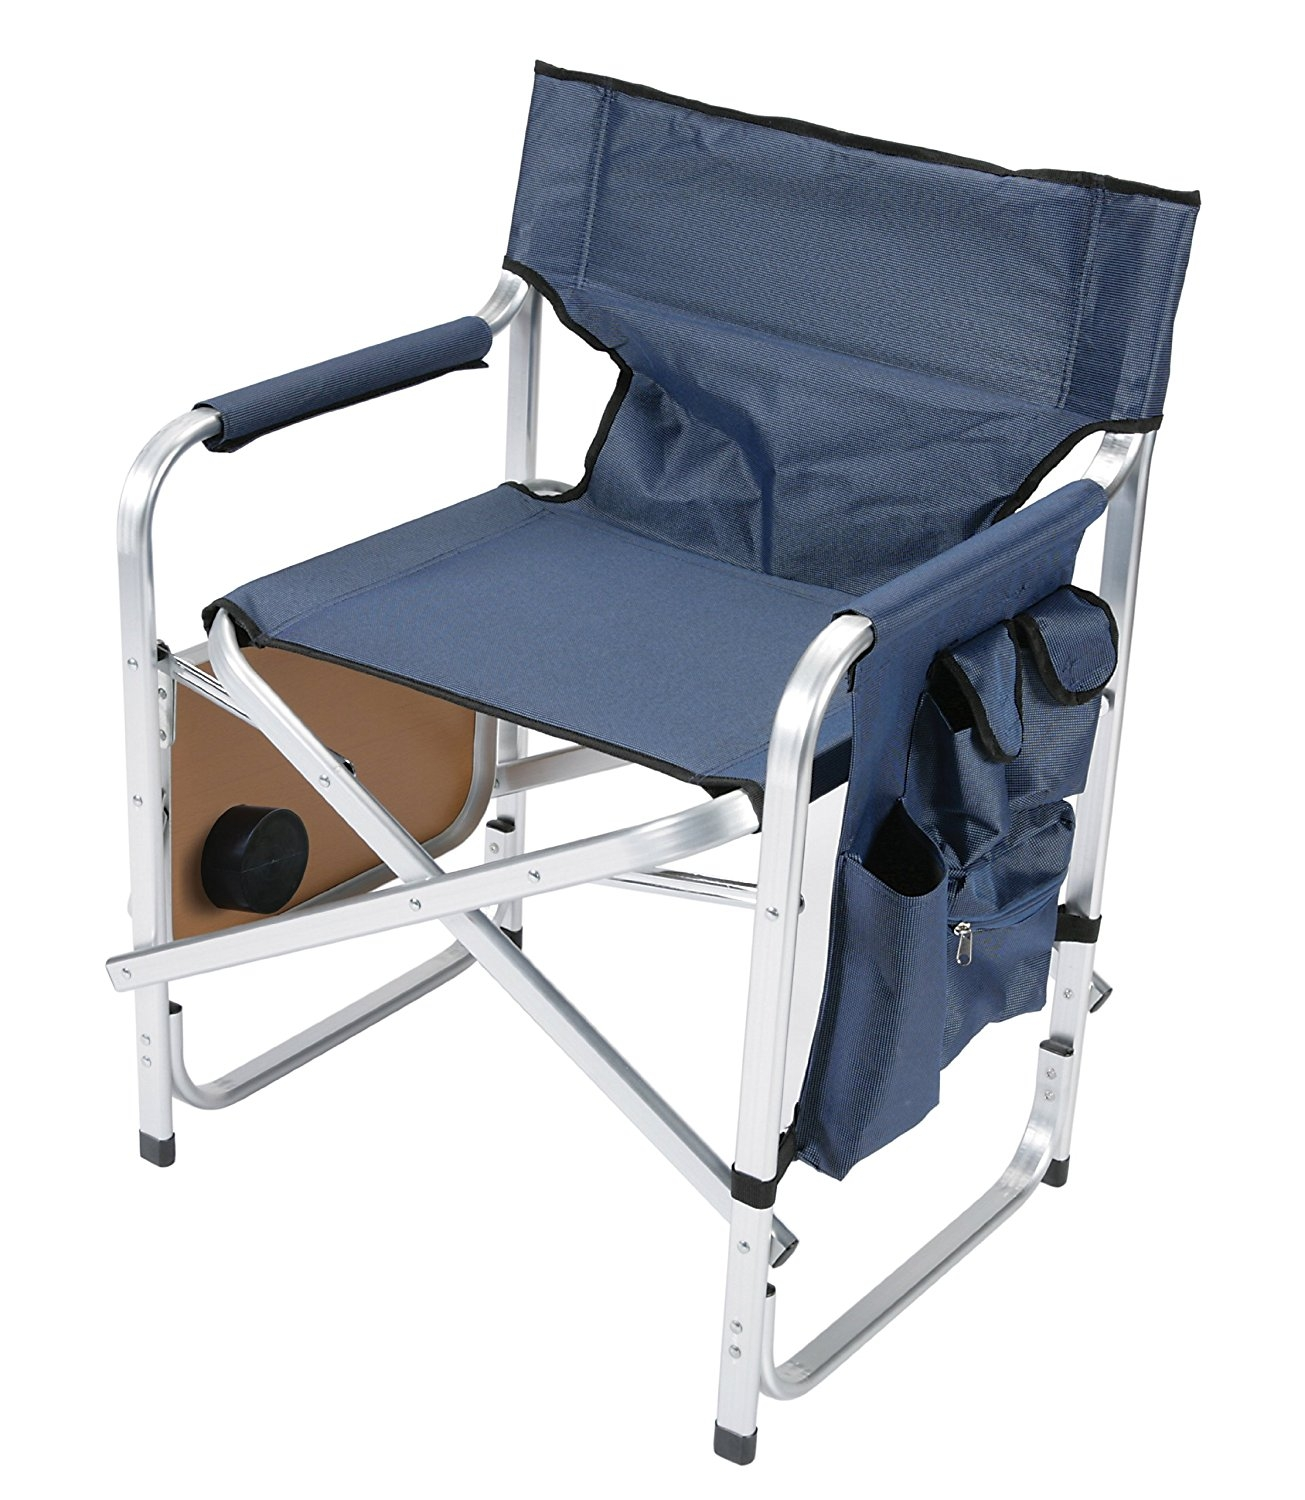 Faulkner Aluminum Director Chair With Folding Tray And Cup Holder, Blue